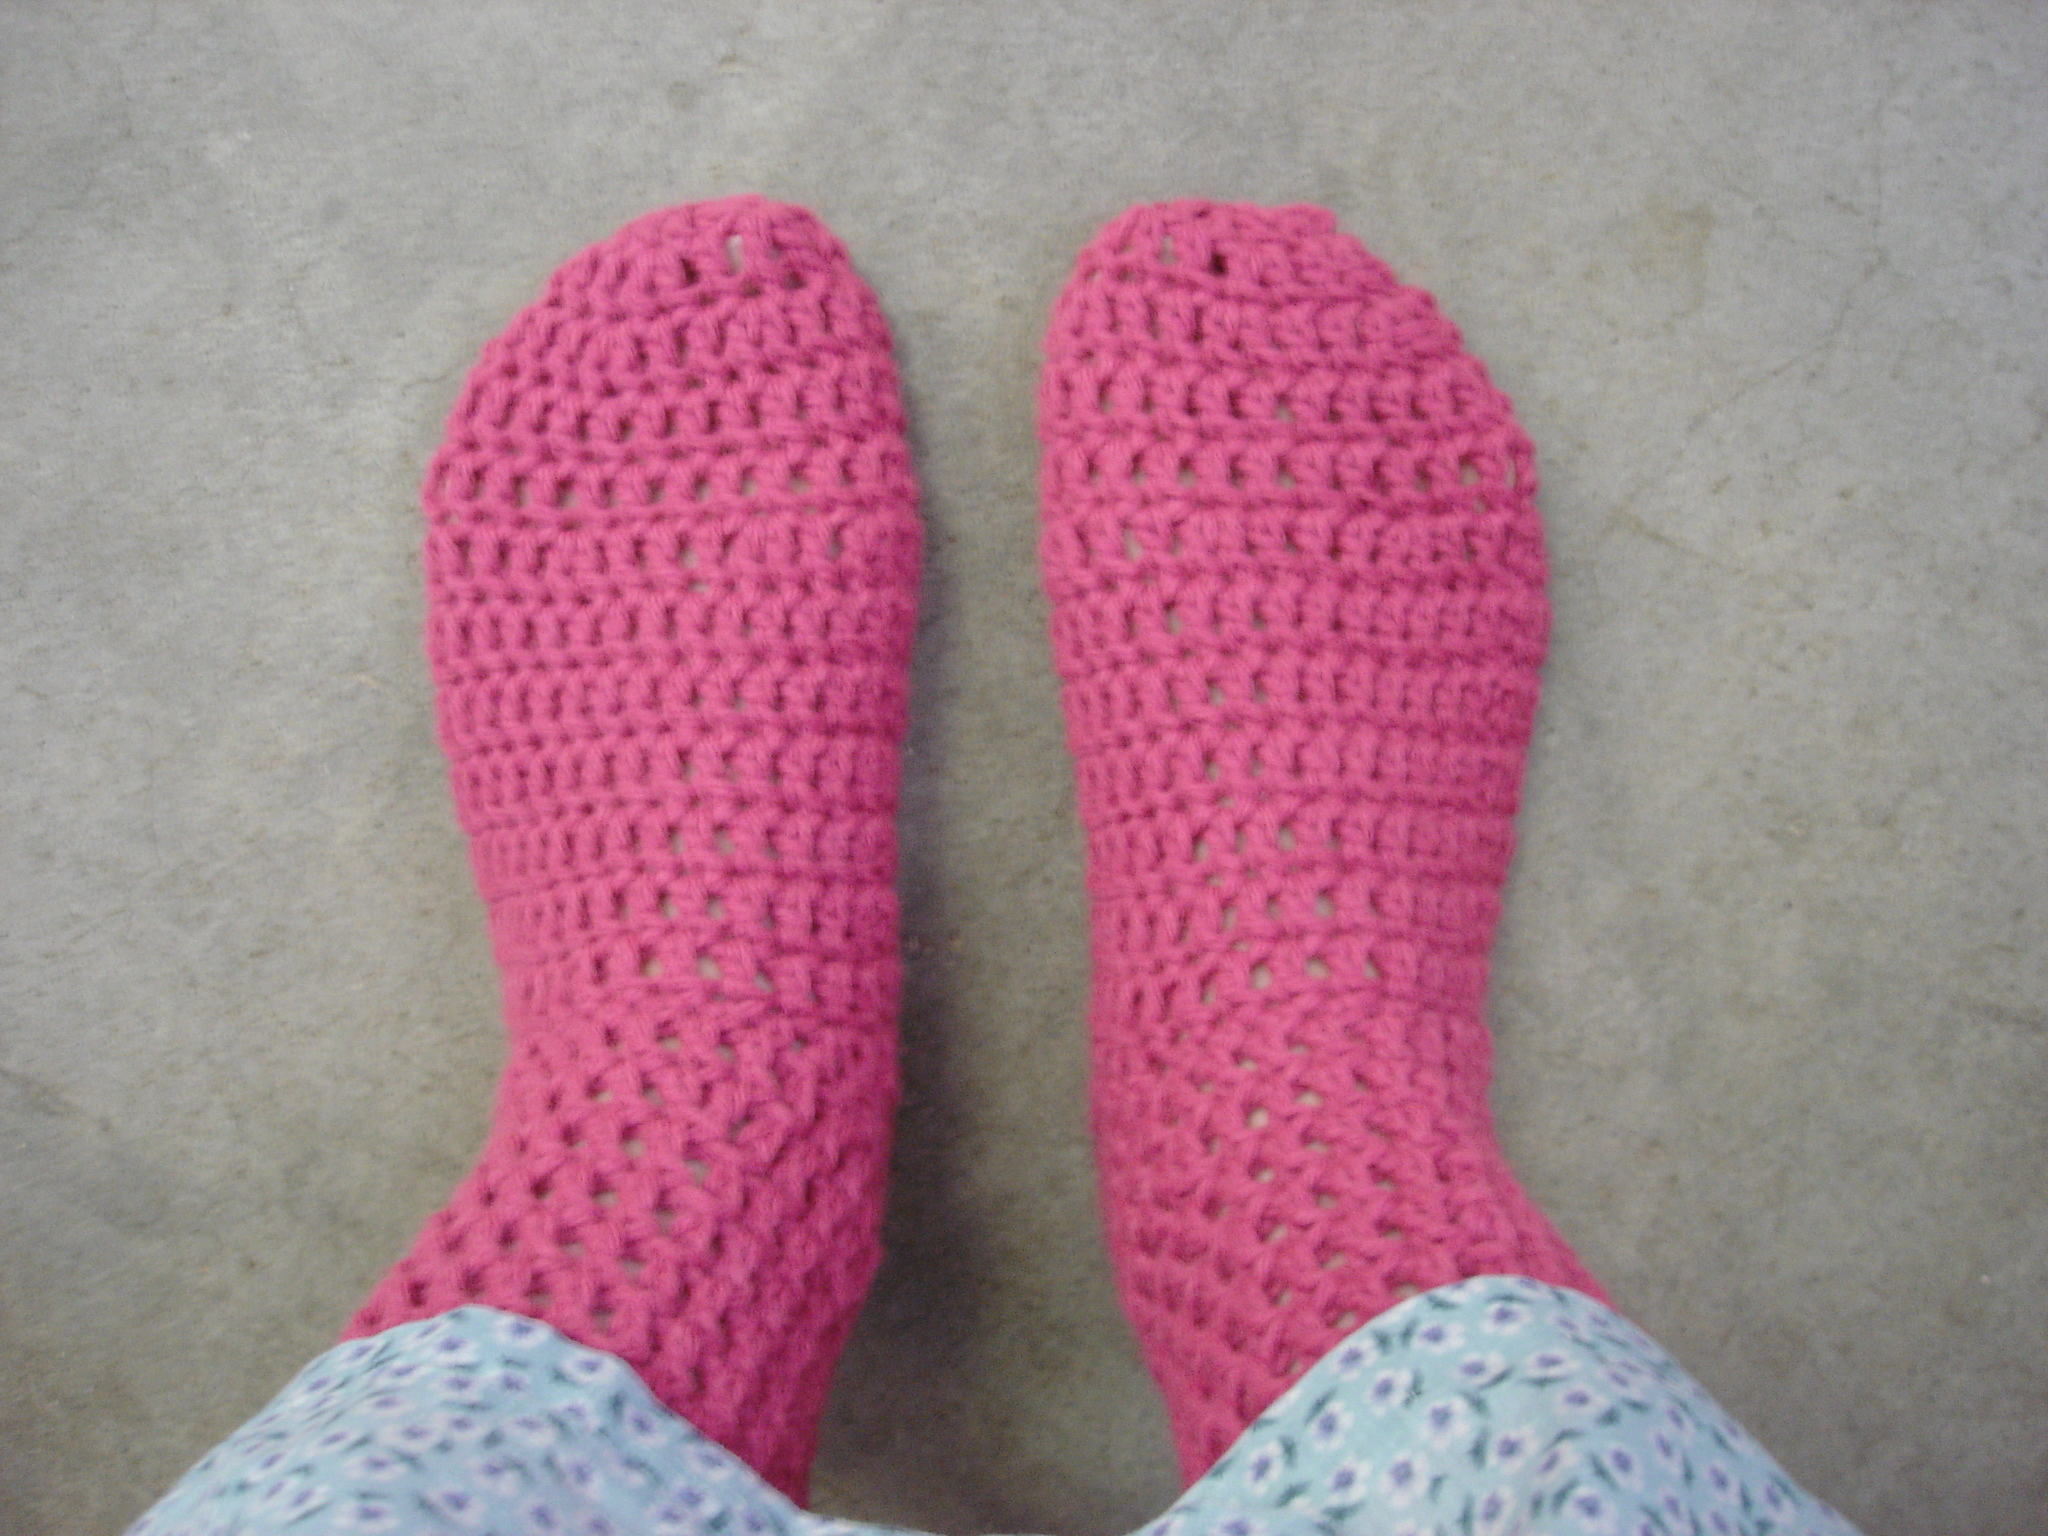 Easy Sock Knitting Pattern : Crochet Sock Pattern merrydeals4u